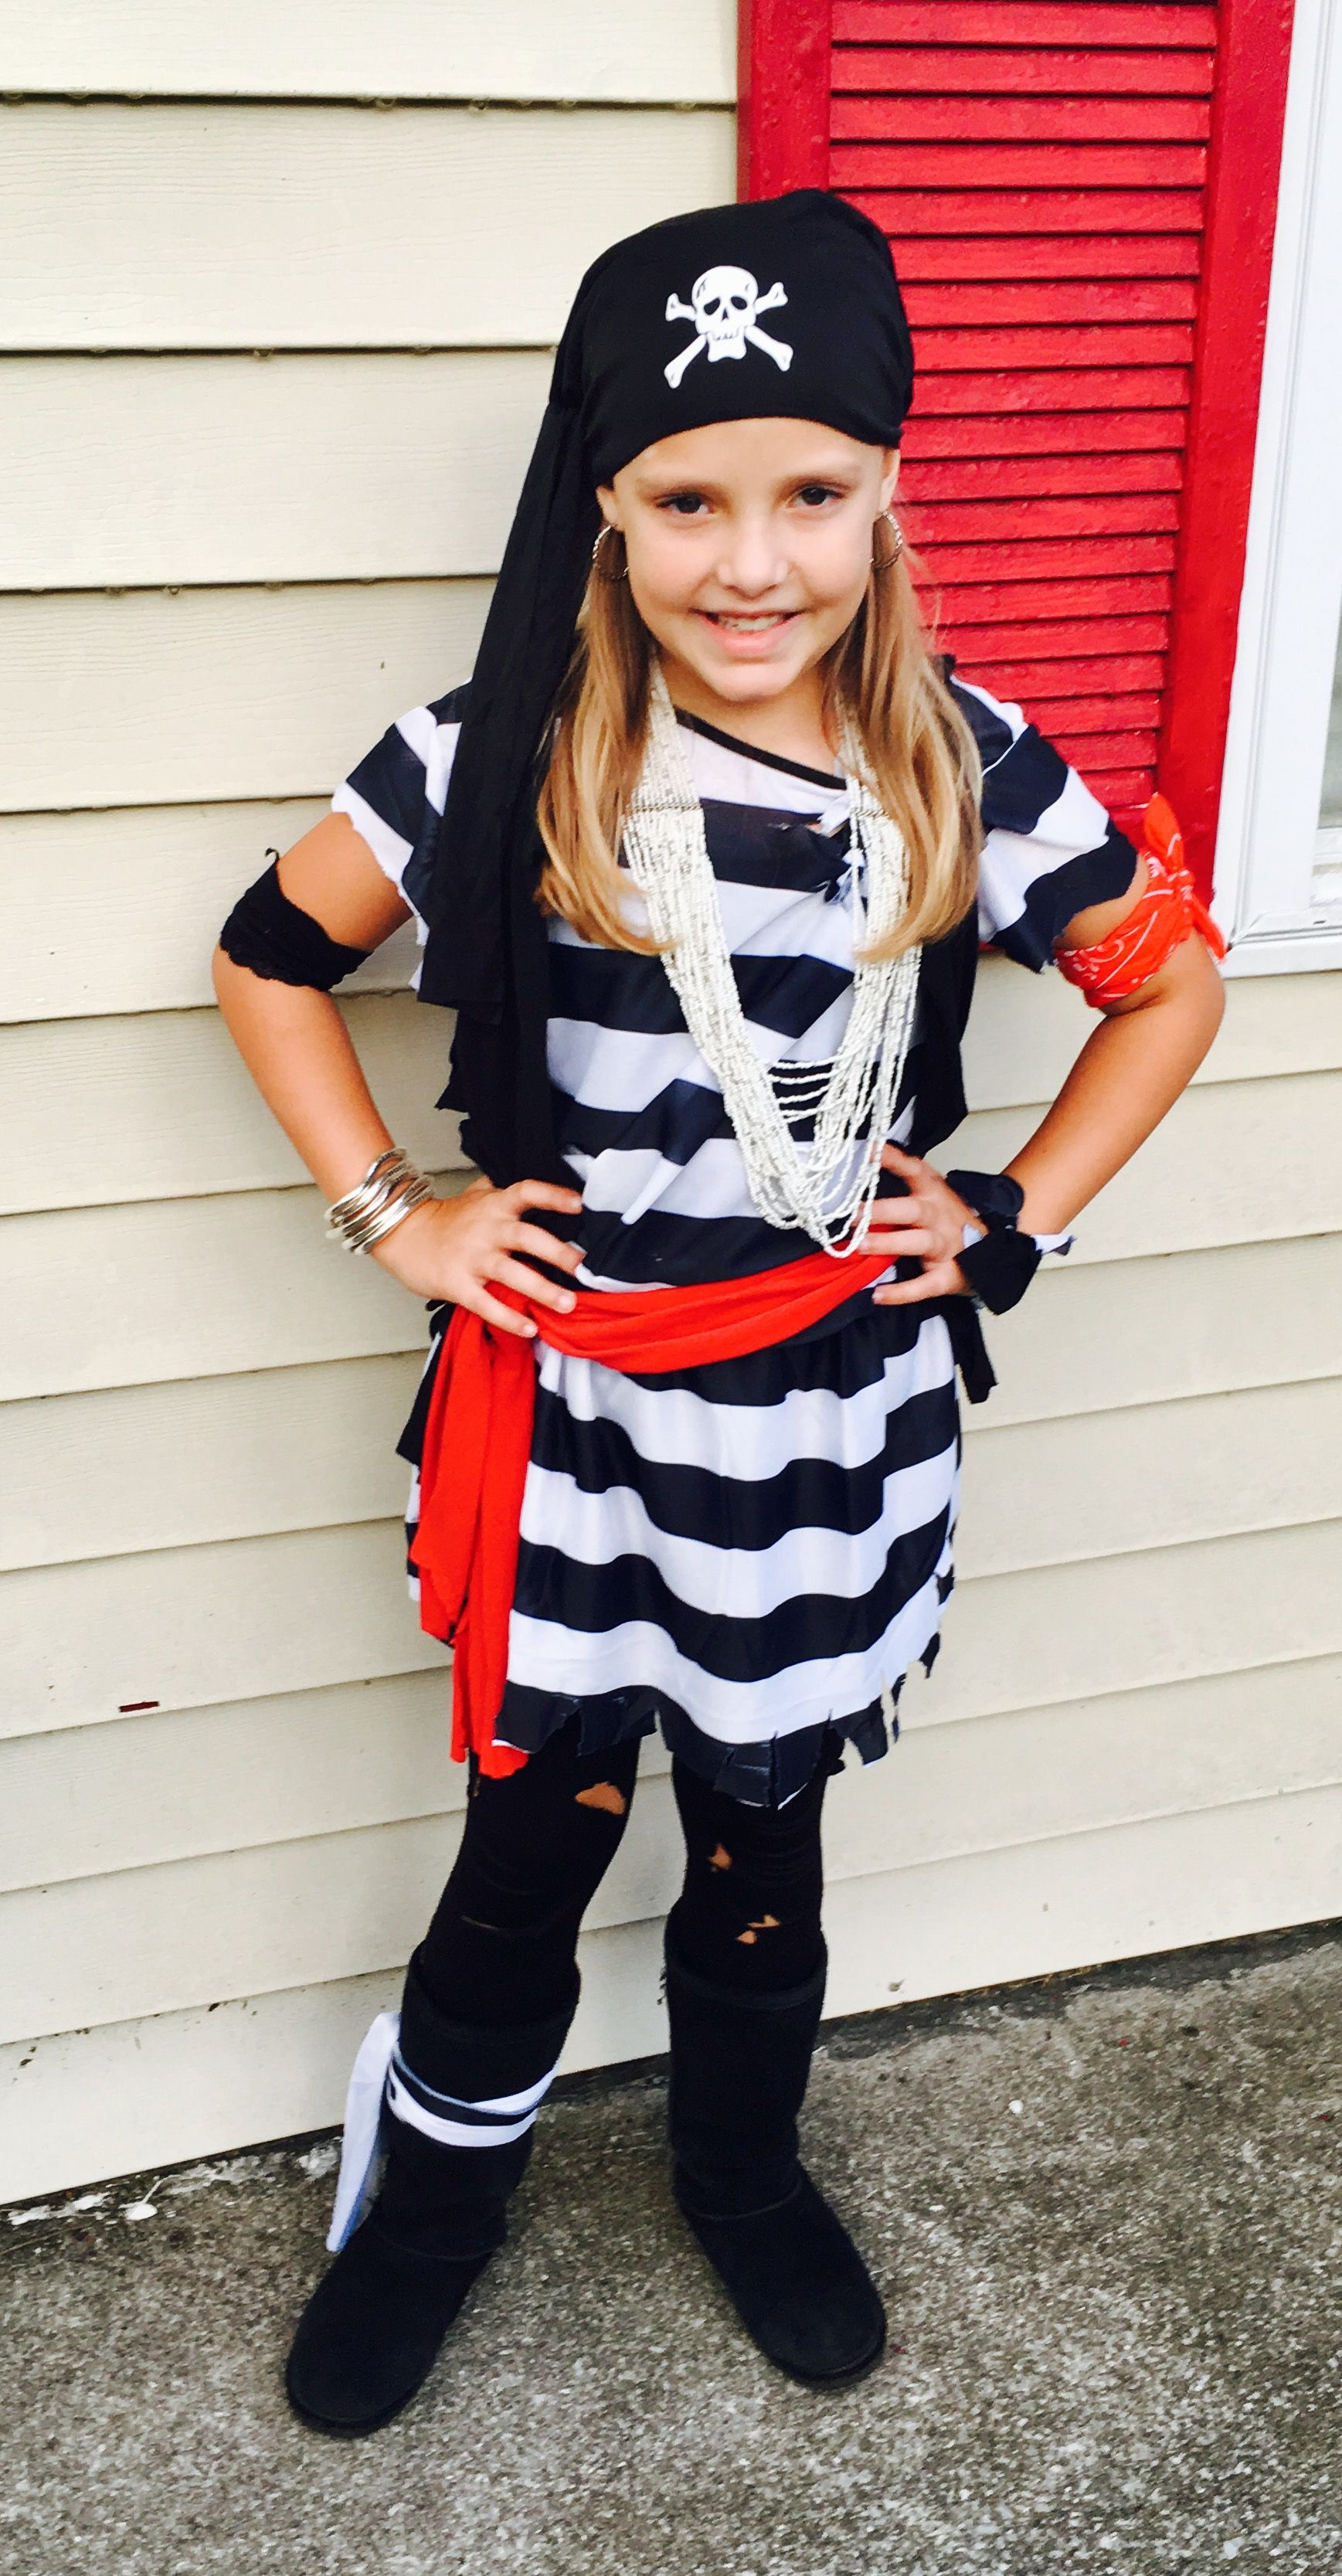 original diy pirate outfit girl costume